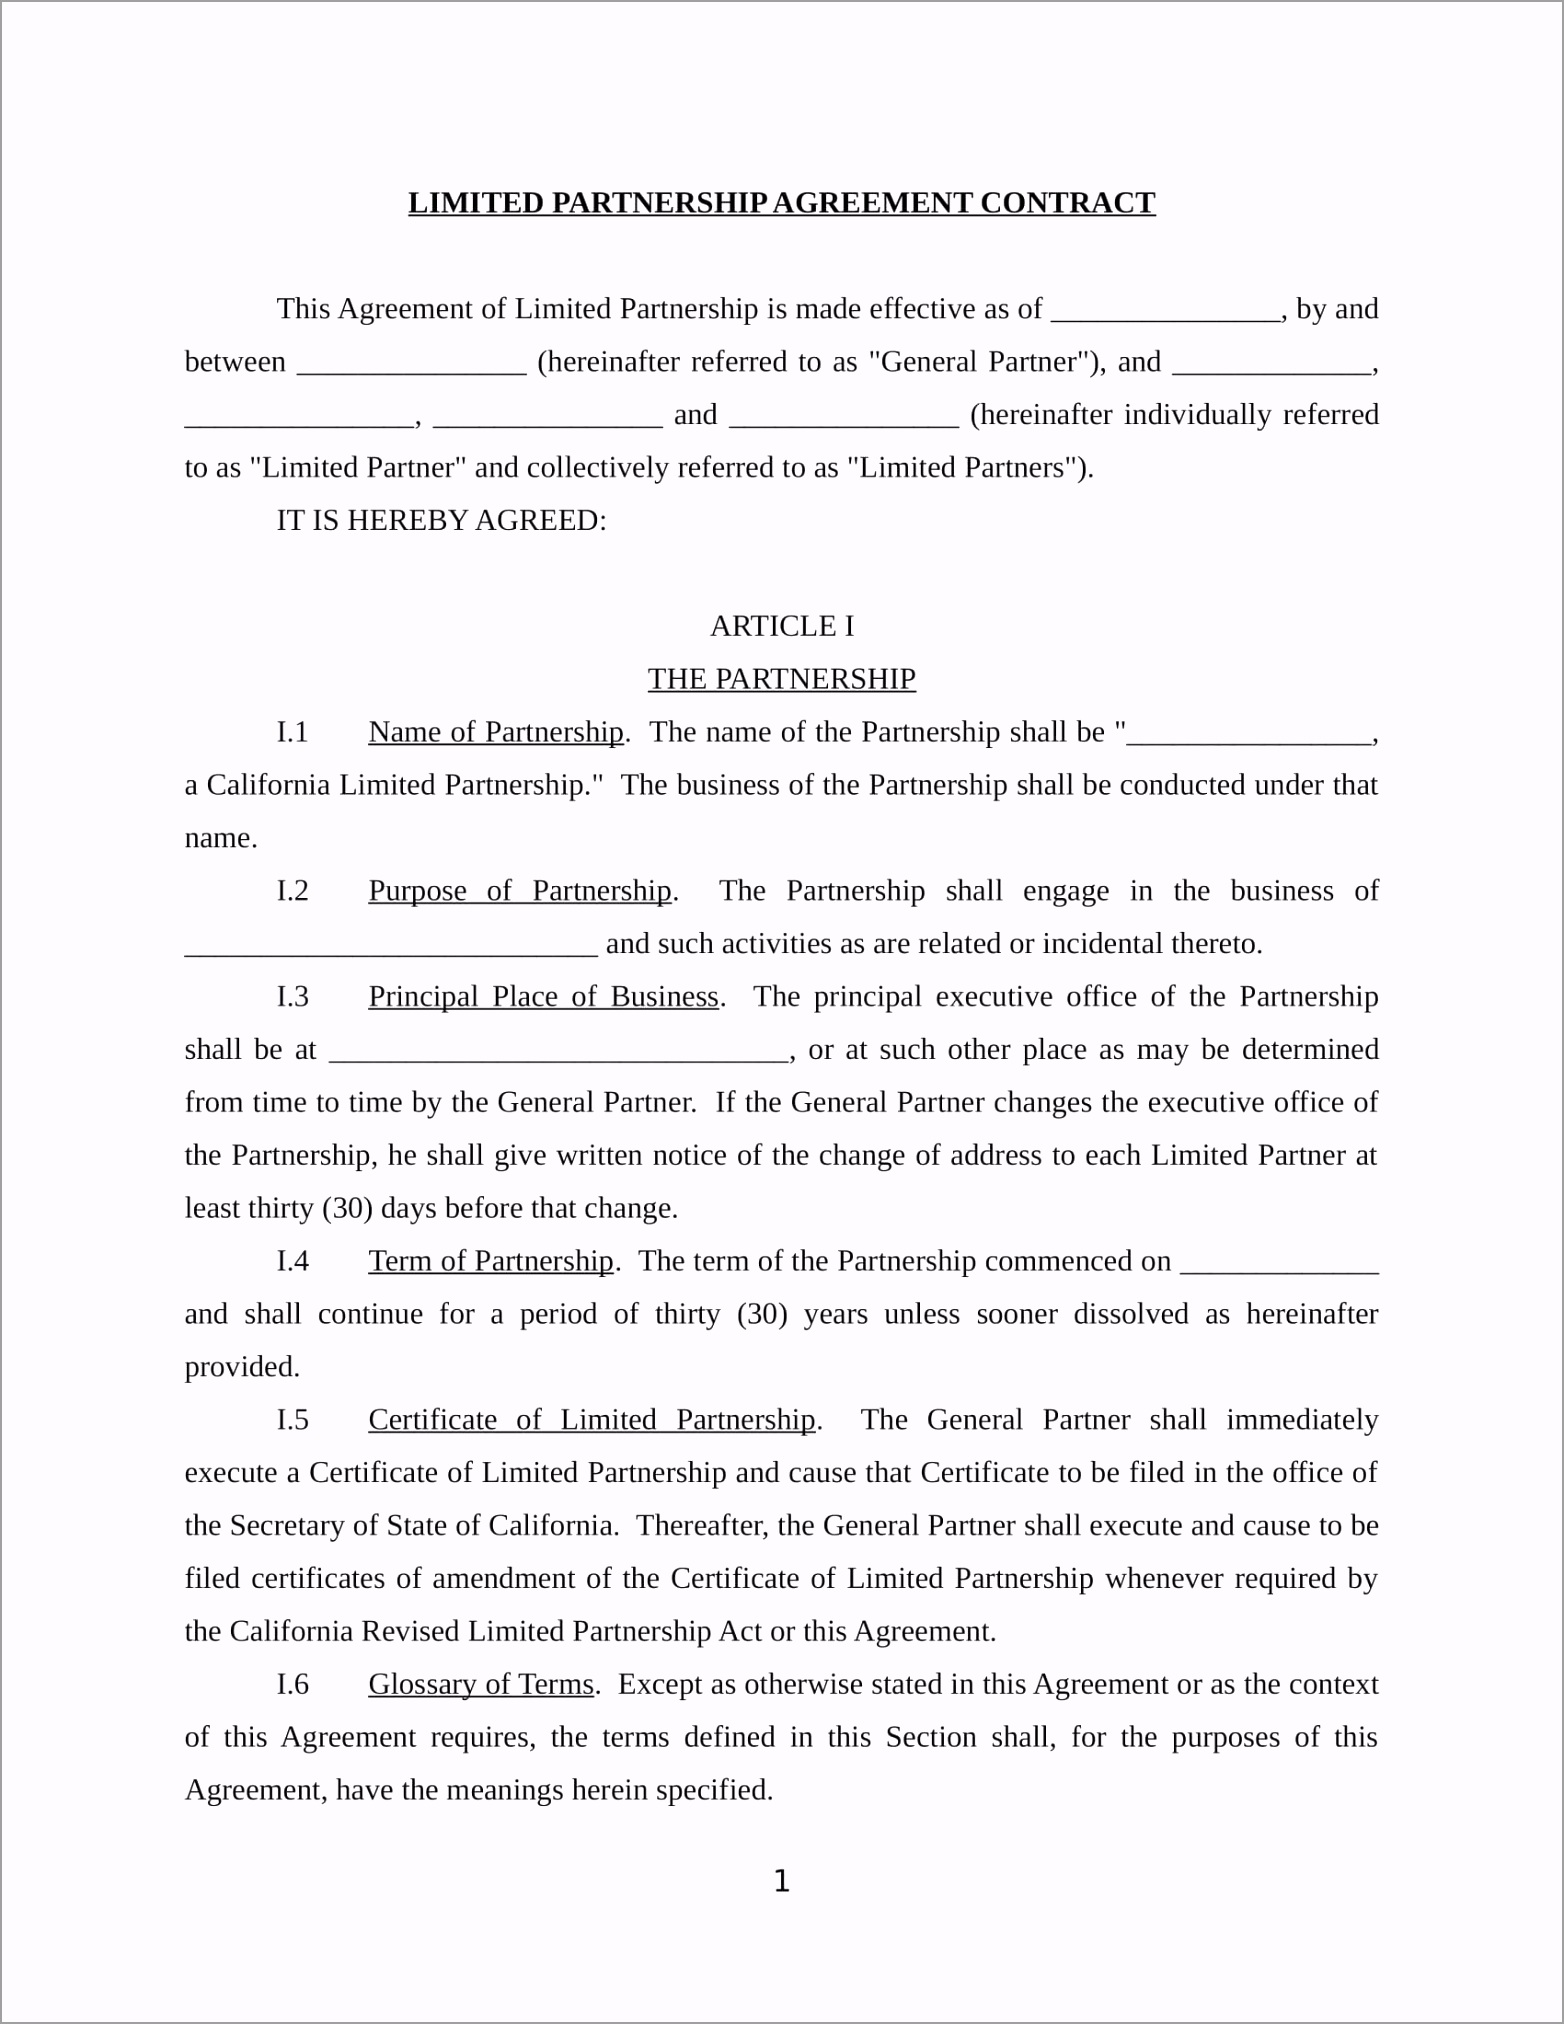 Limited Partnership Agreement Contract Form in DOC 01 iwooo